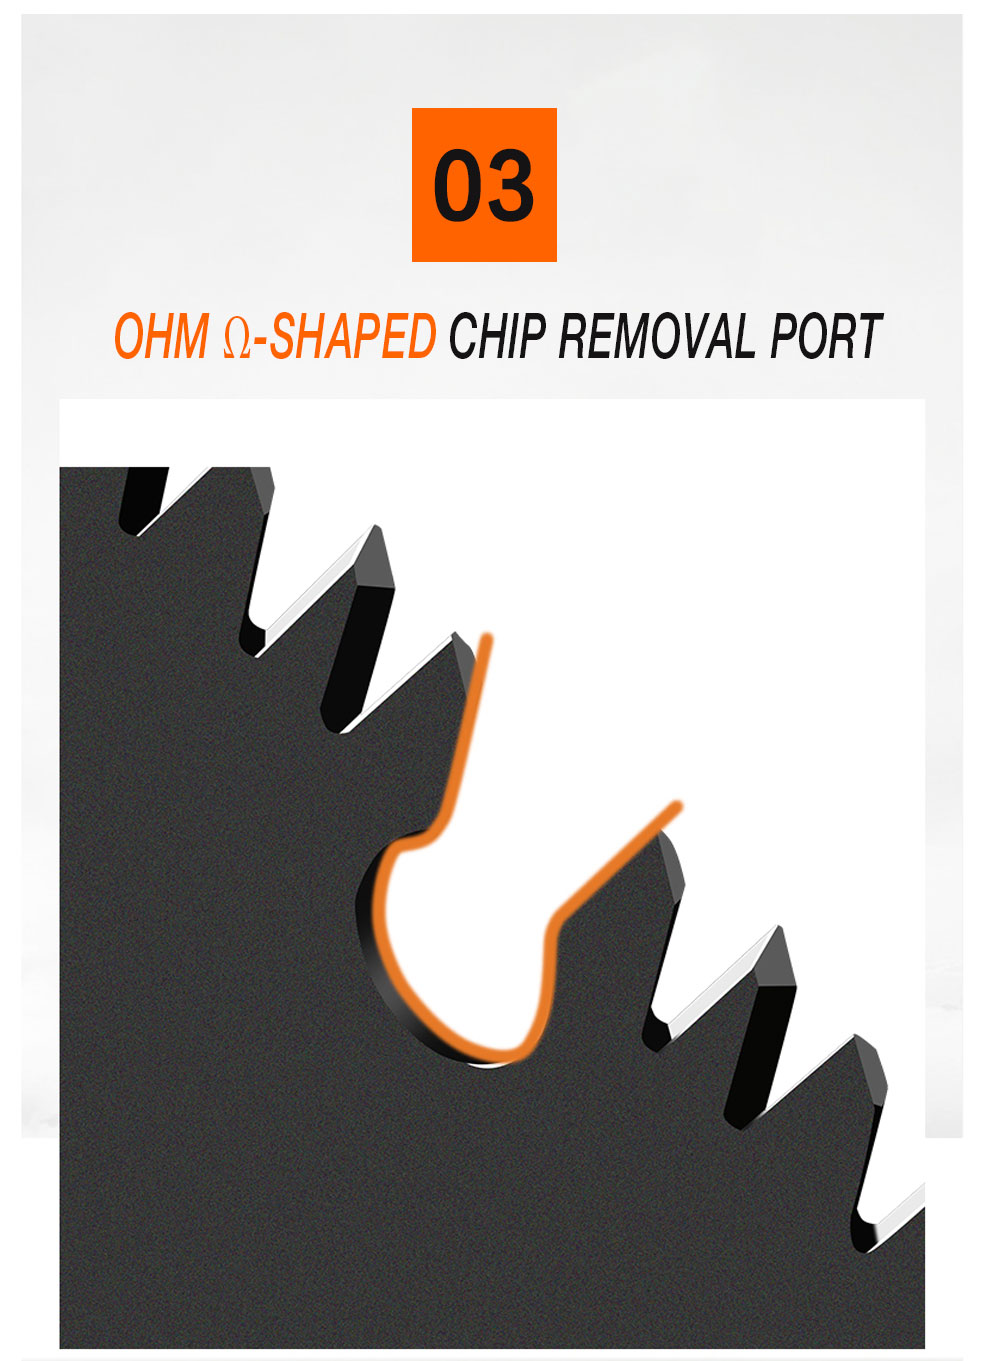 AI-ROAD handsaw OHM shaped chip removal port